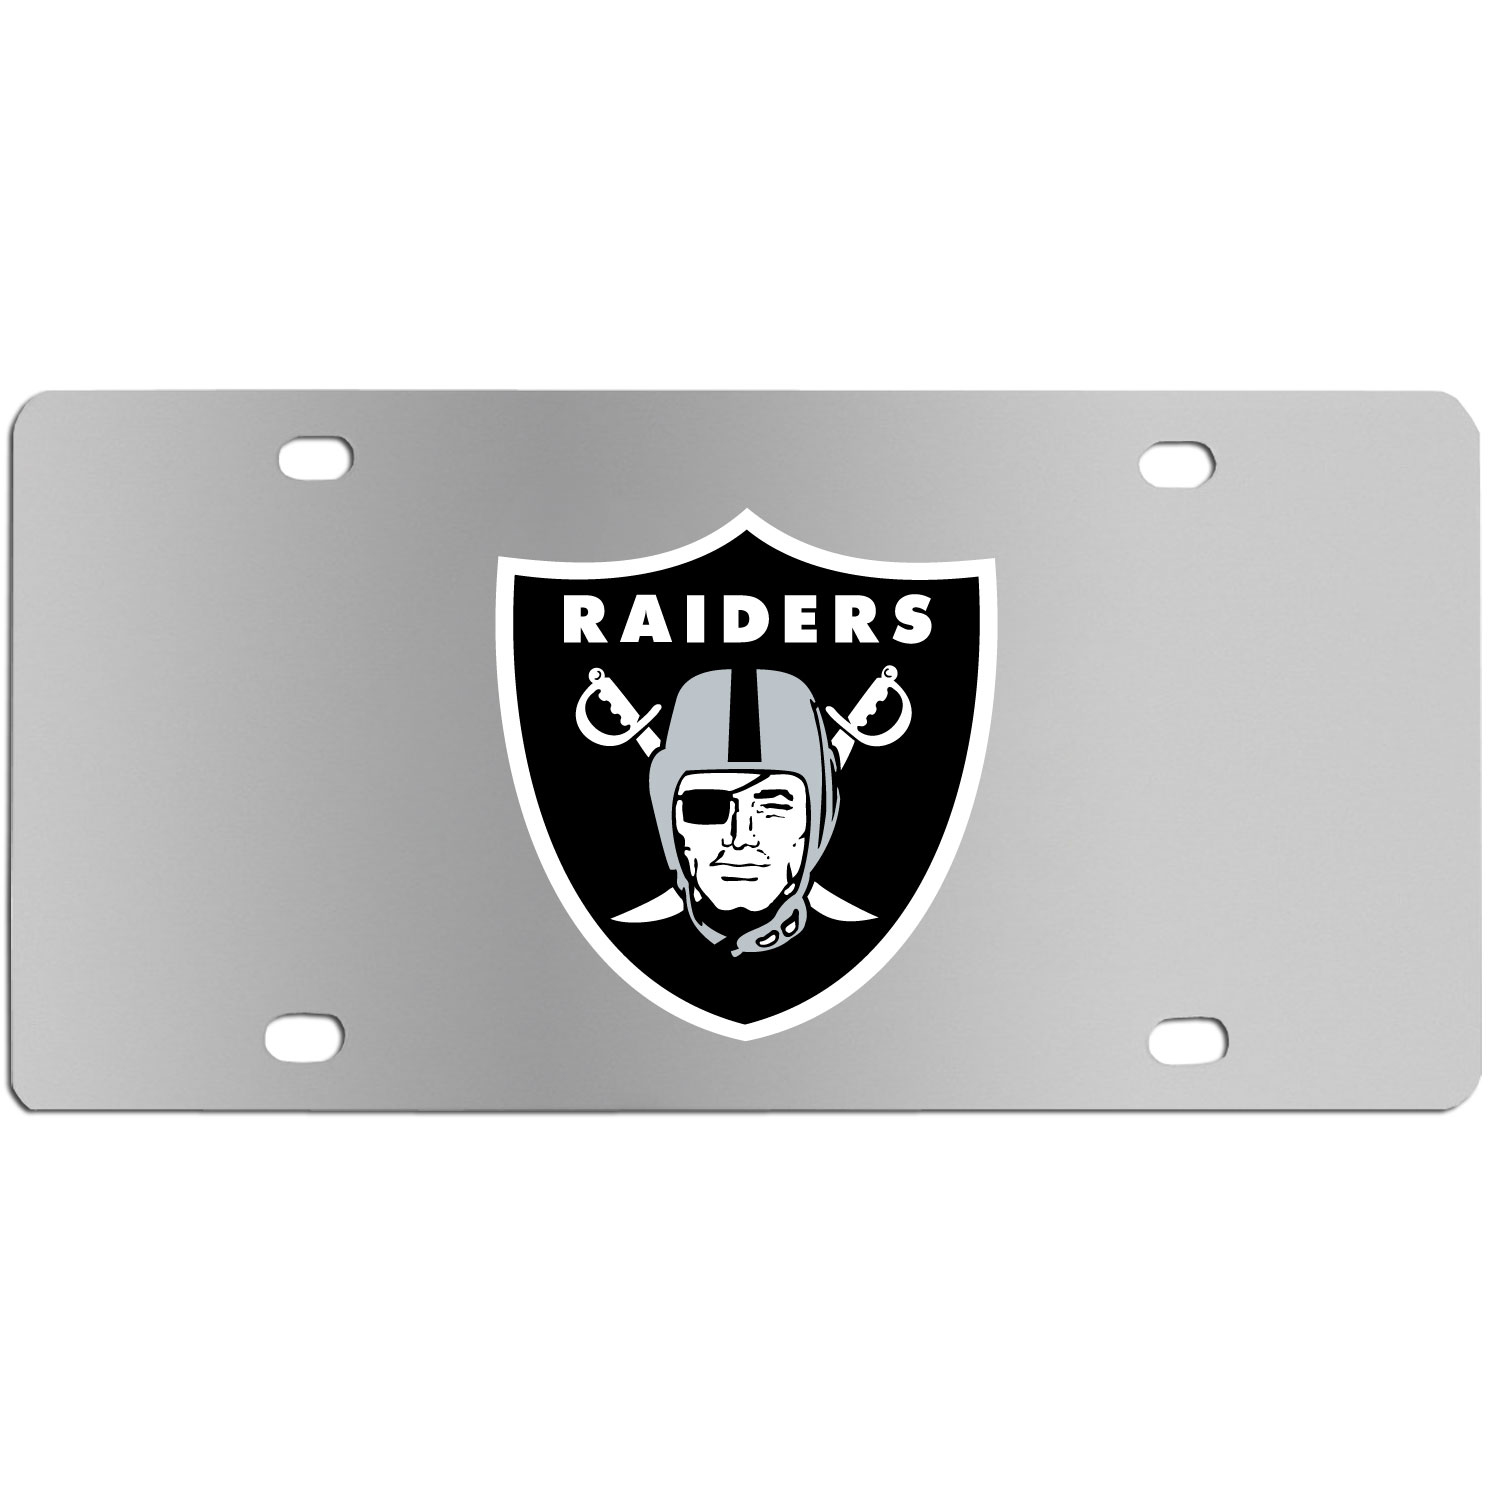 Oakland Raiders Steel License Plate Wall Plaque - This high-quality stainless steel license plate features a detailed team logo on a the polished surface. The attractive plate is perfect for wall mounting in your home or office to become the perfect die-hard Oakland Raiders fan decor.